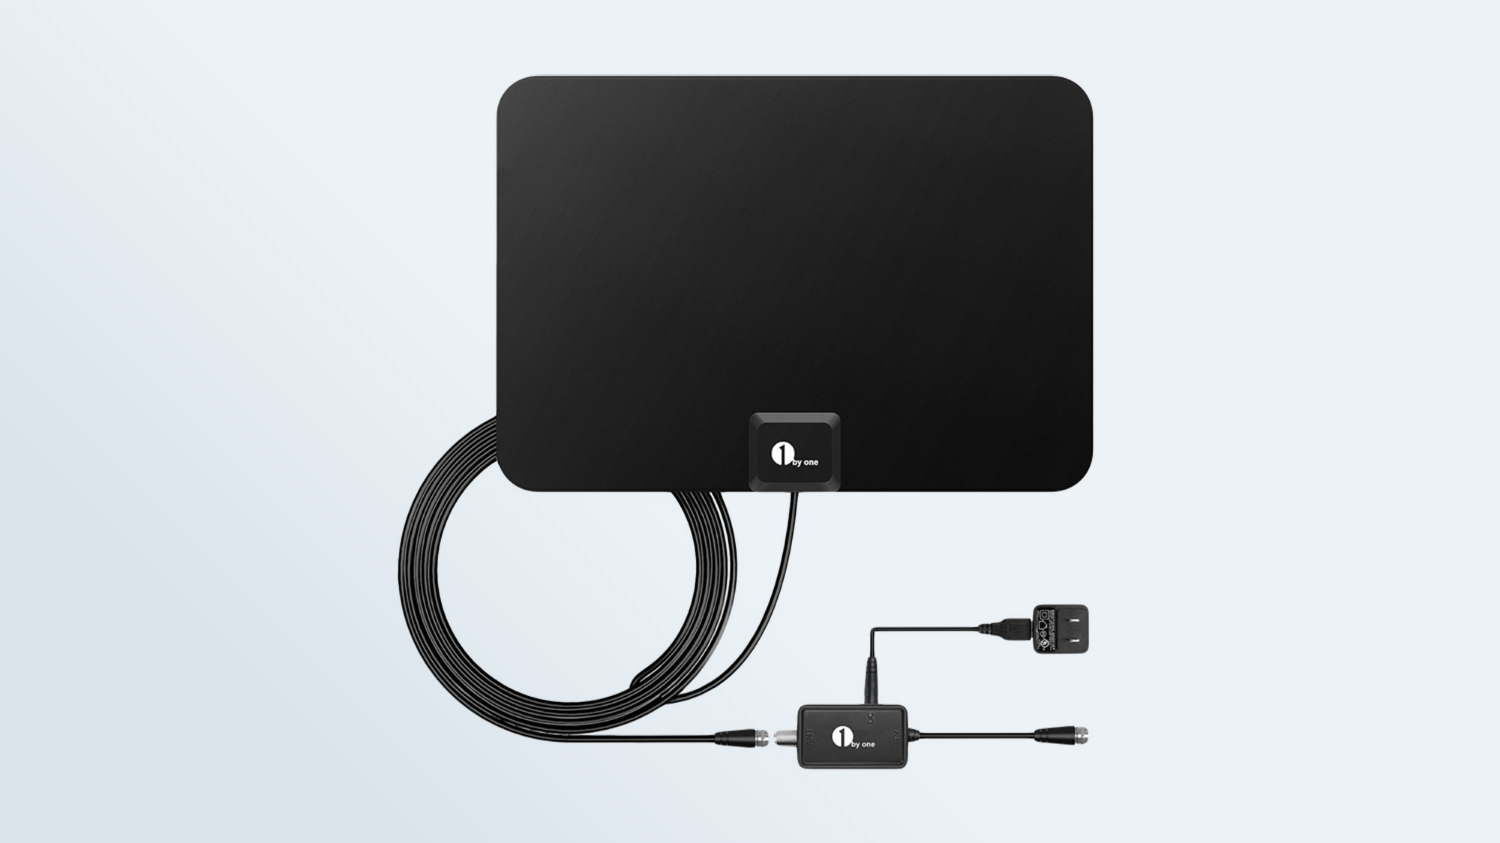 Best TV antenna: 1byone Amplified HDTV Antenna